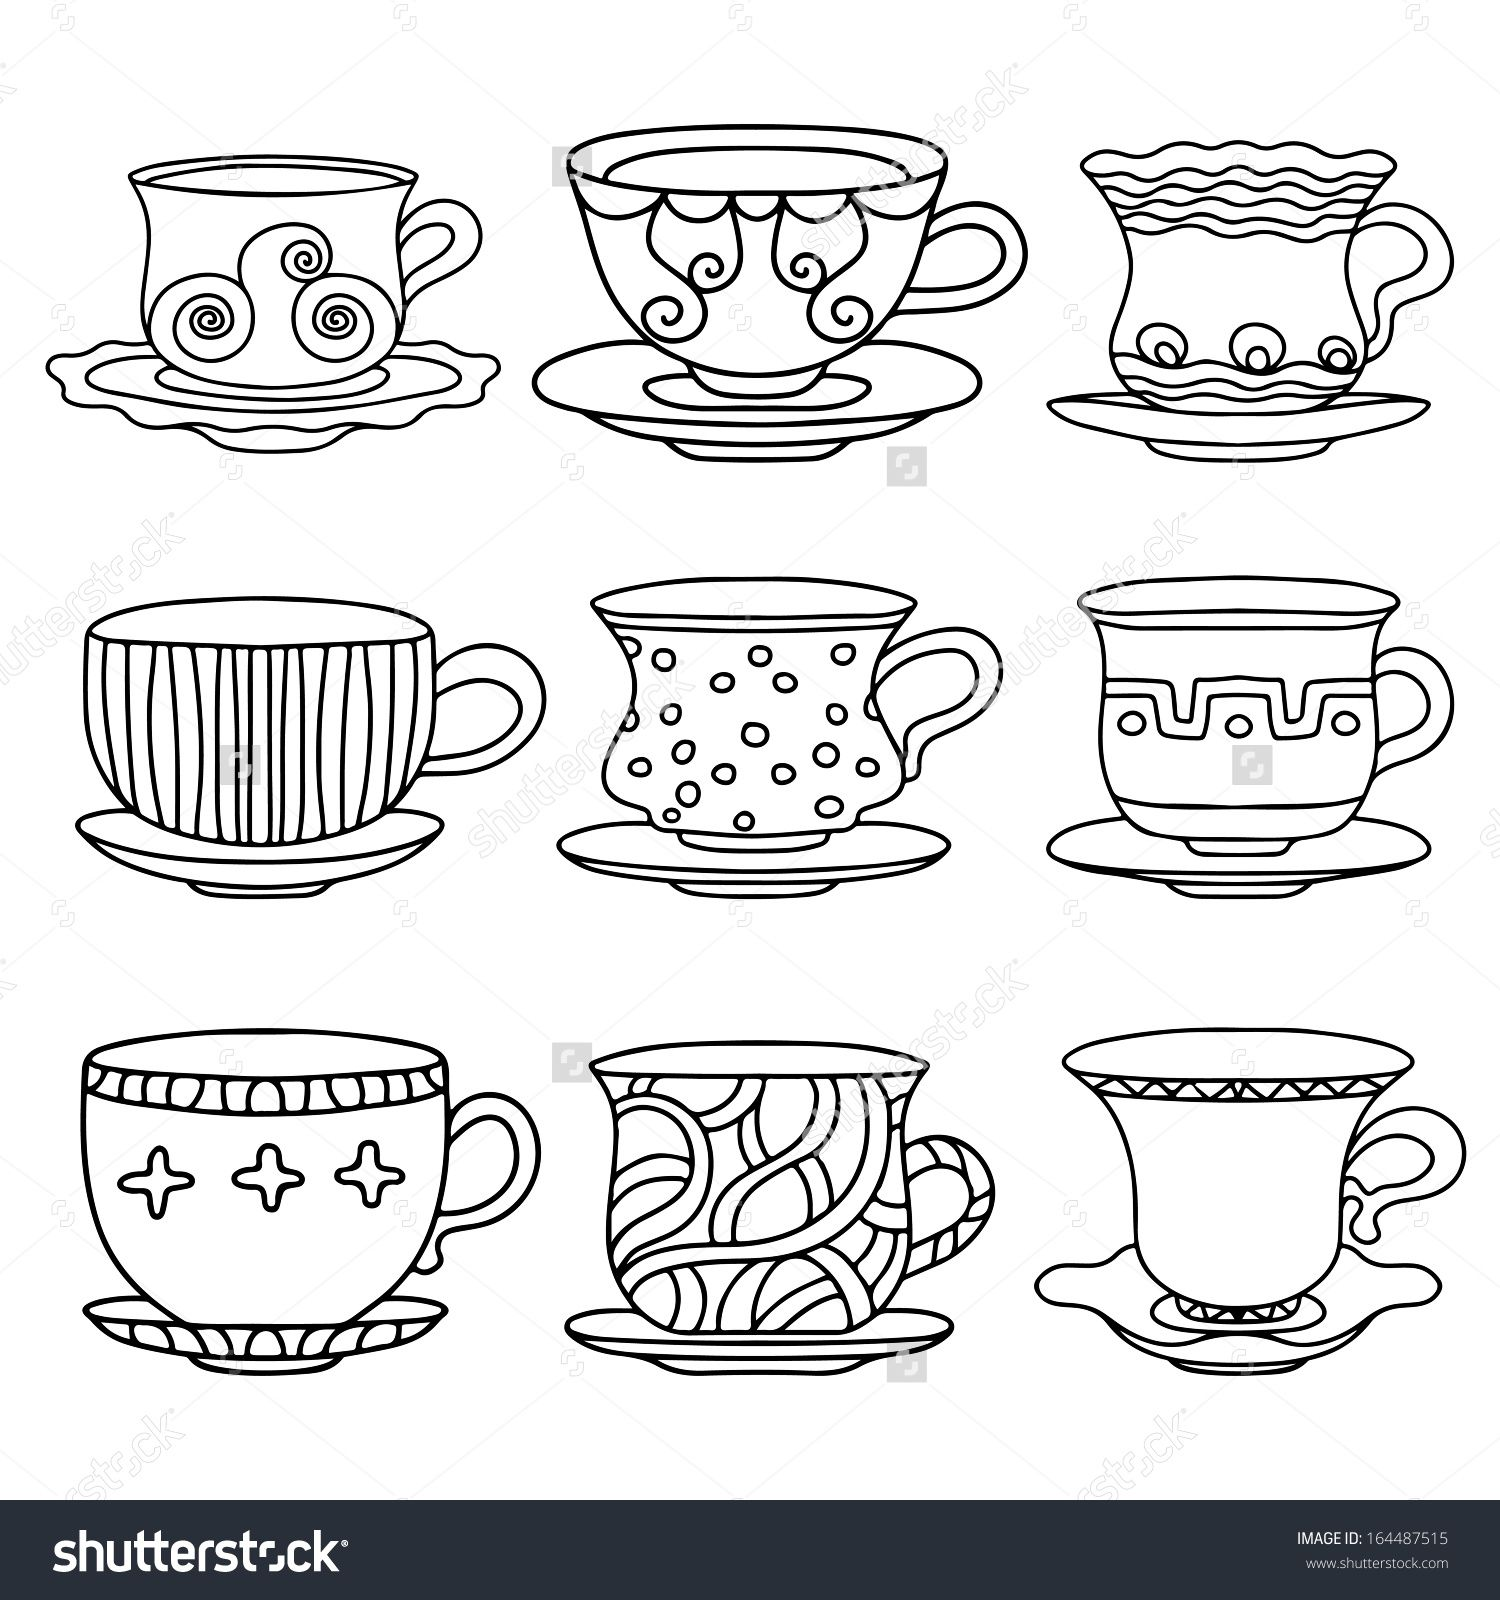 Coffee cup sketch - Stock Vector Tea Cup Coffee Cup Saucers Set